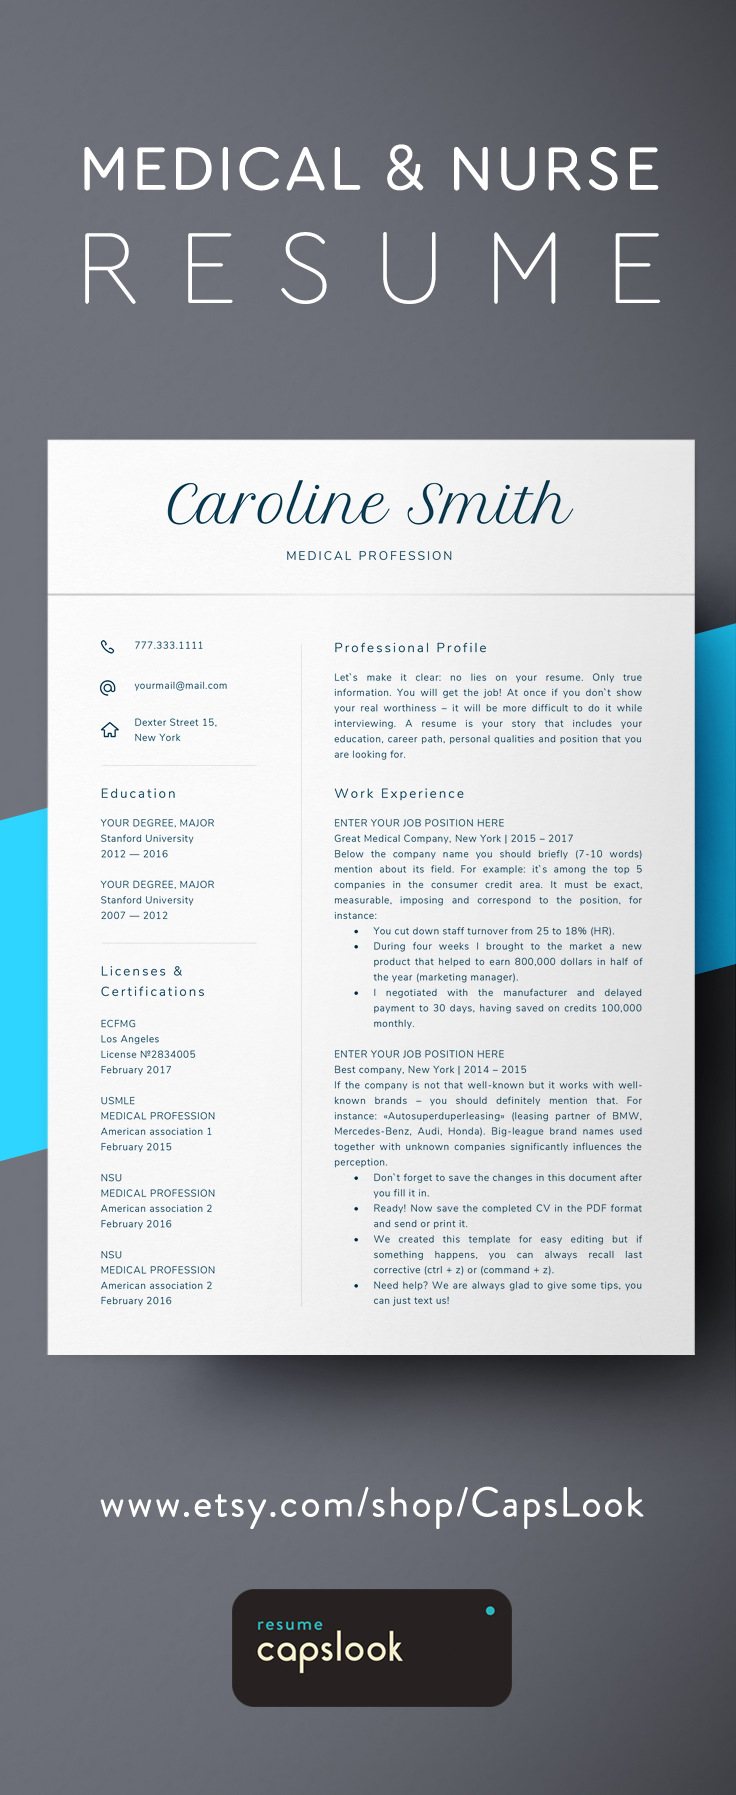 Create a winning Healthcare resume in minutes with this